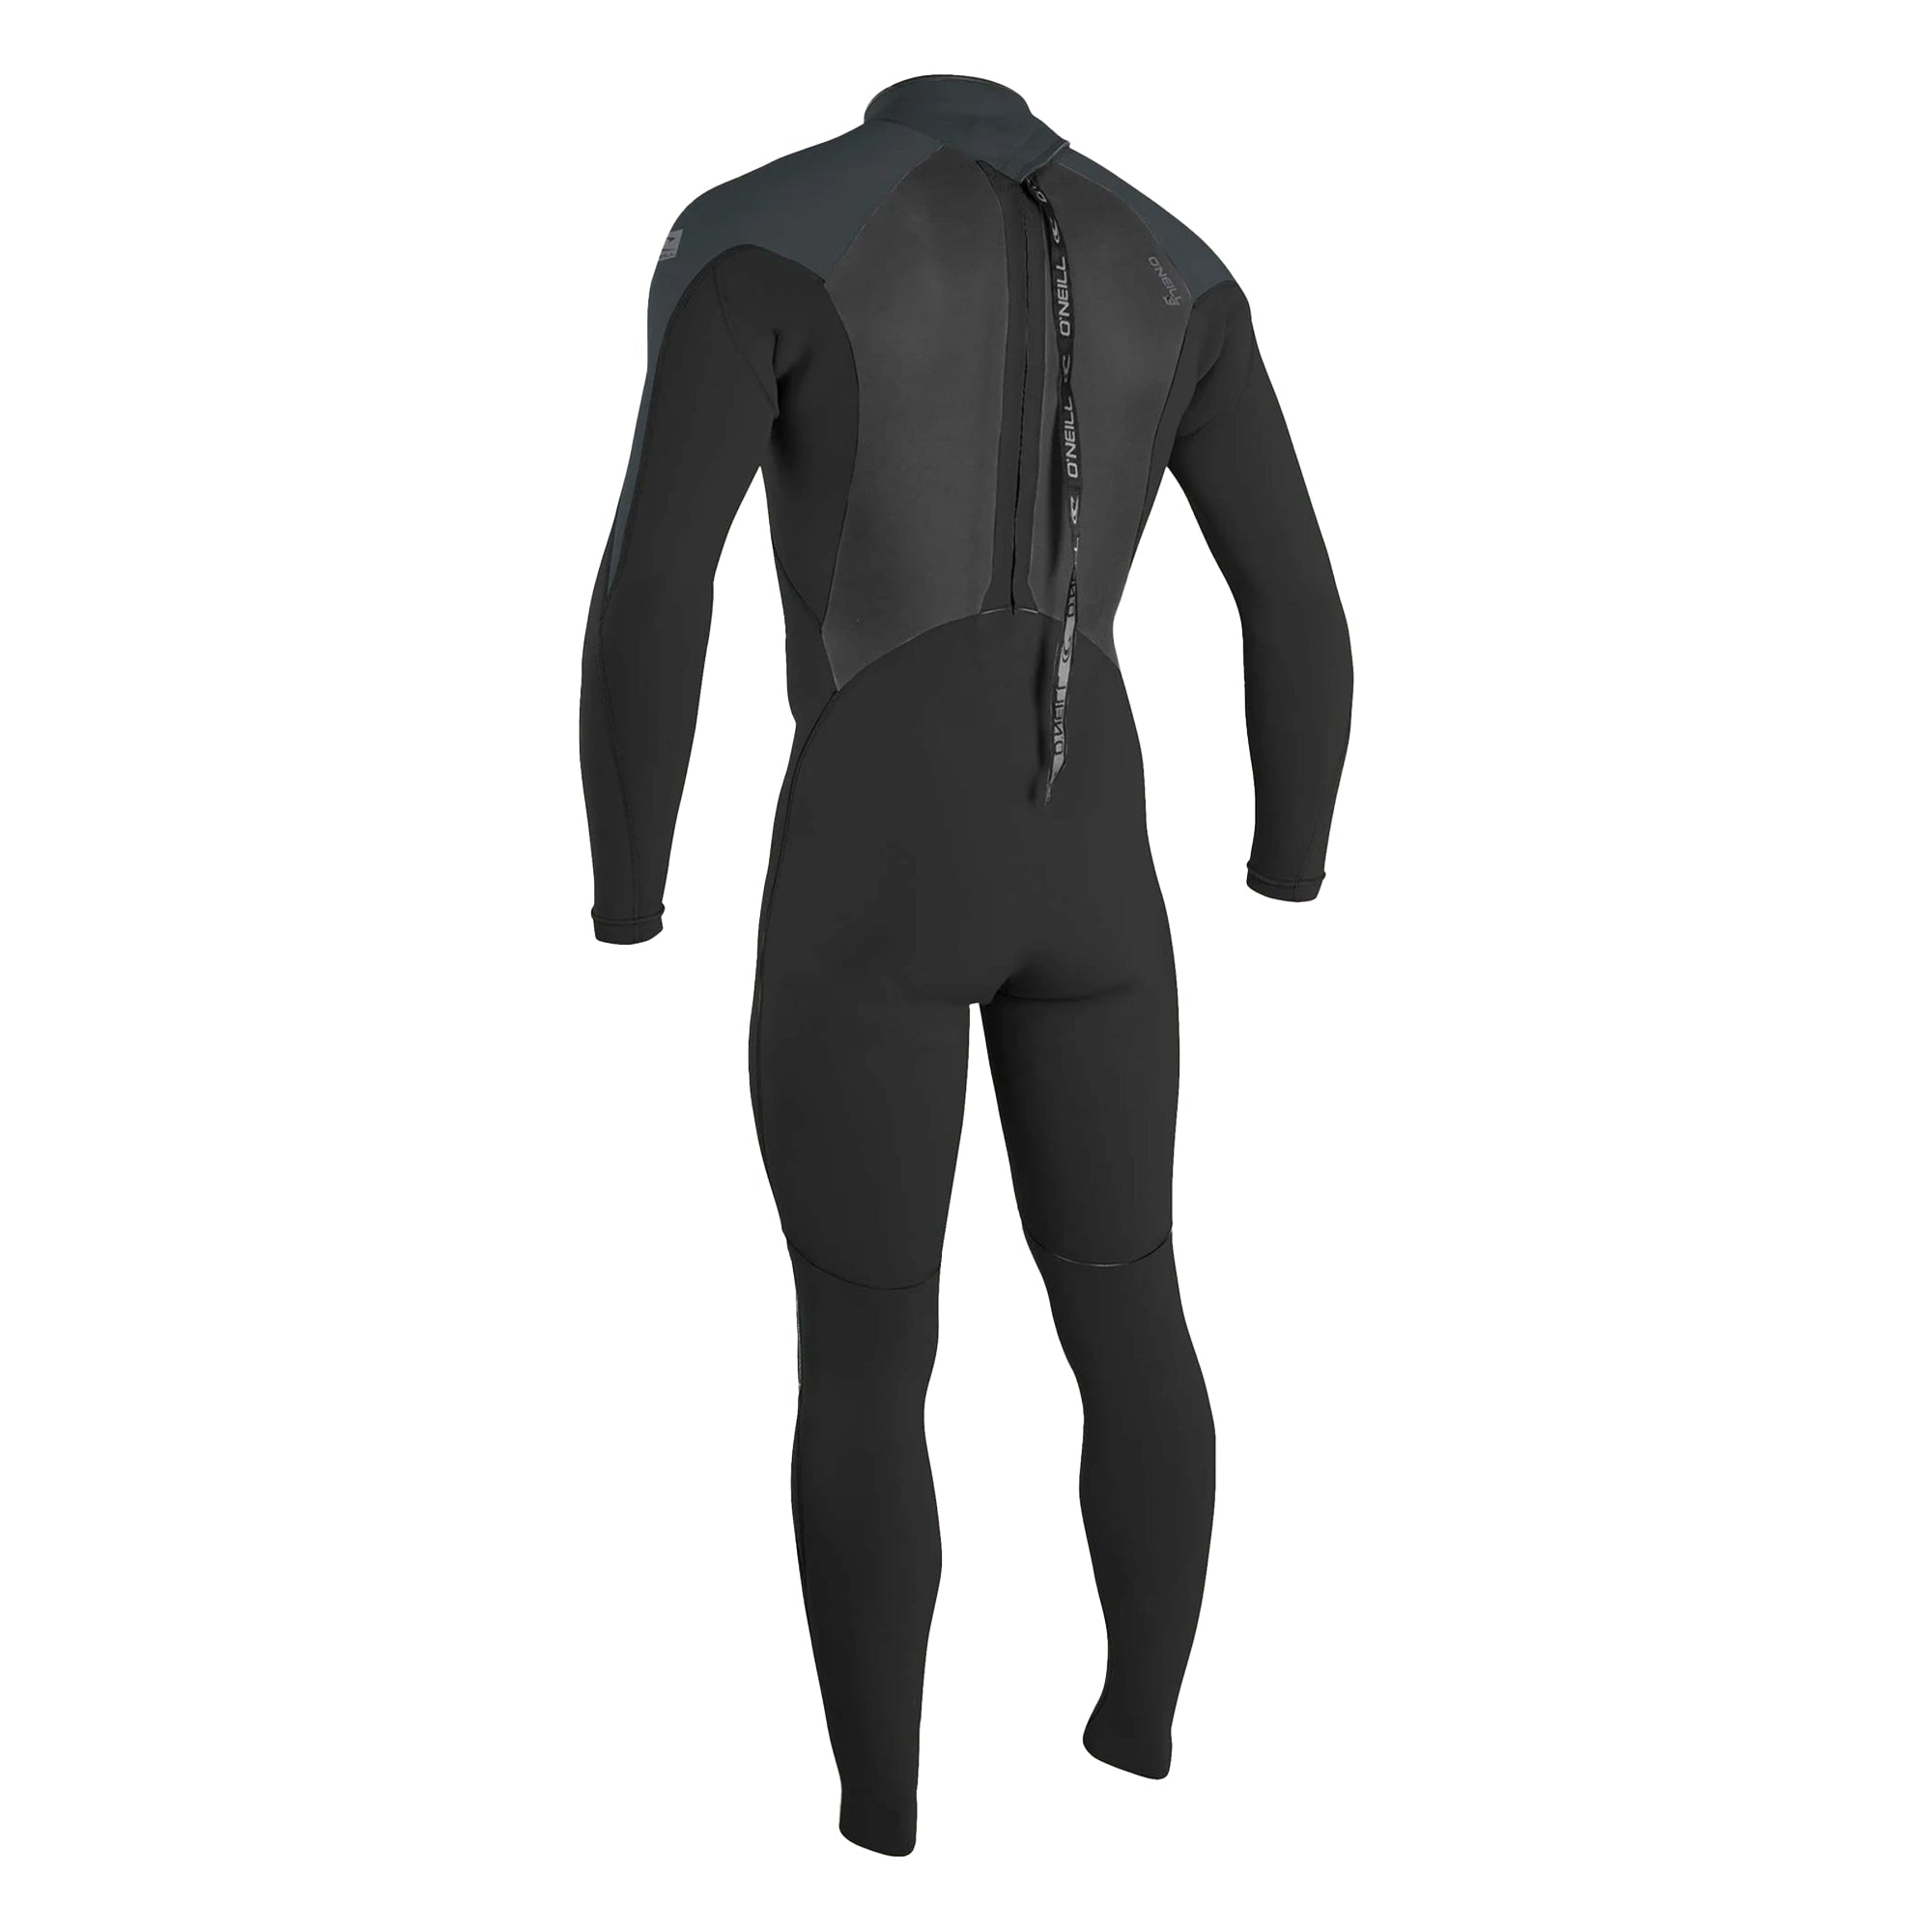 O'Neill Epic 3/2 Men's Back-Zip Fullsuit Wetsuit